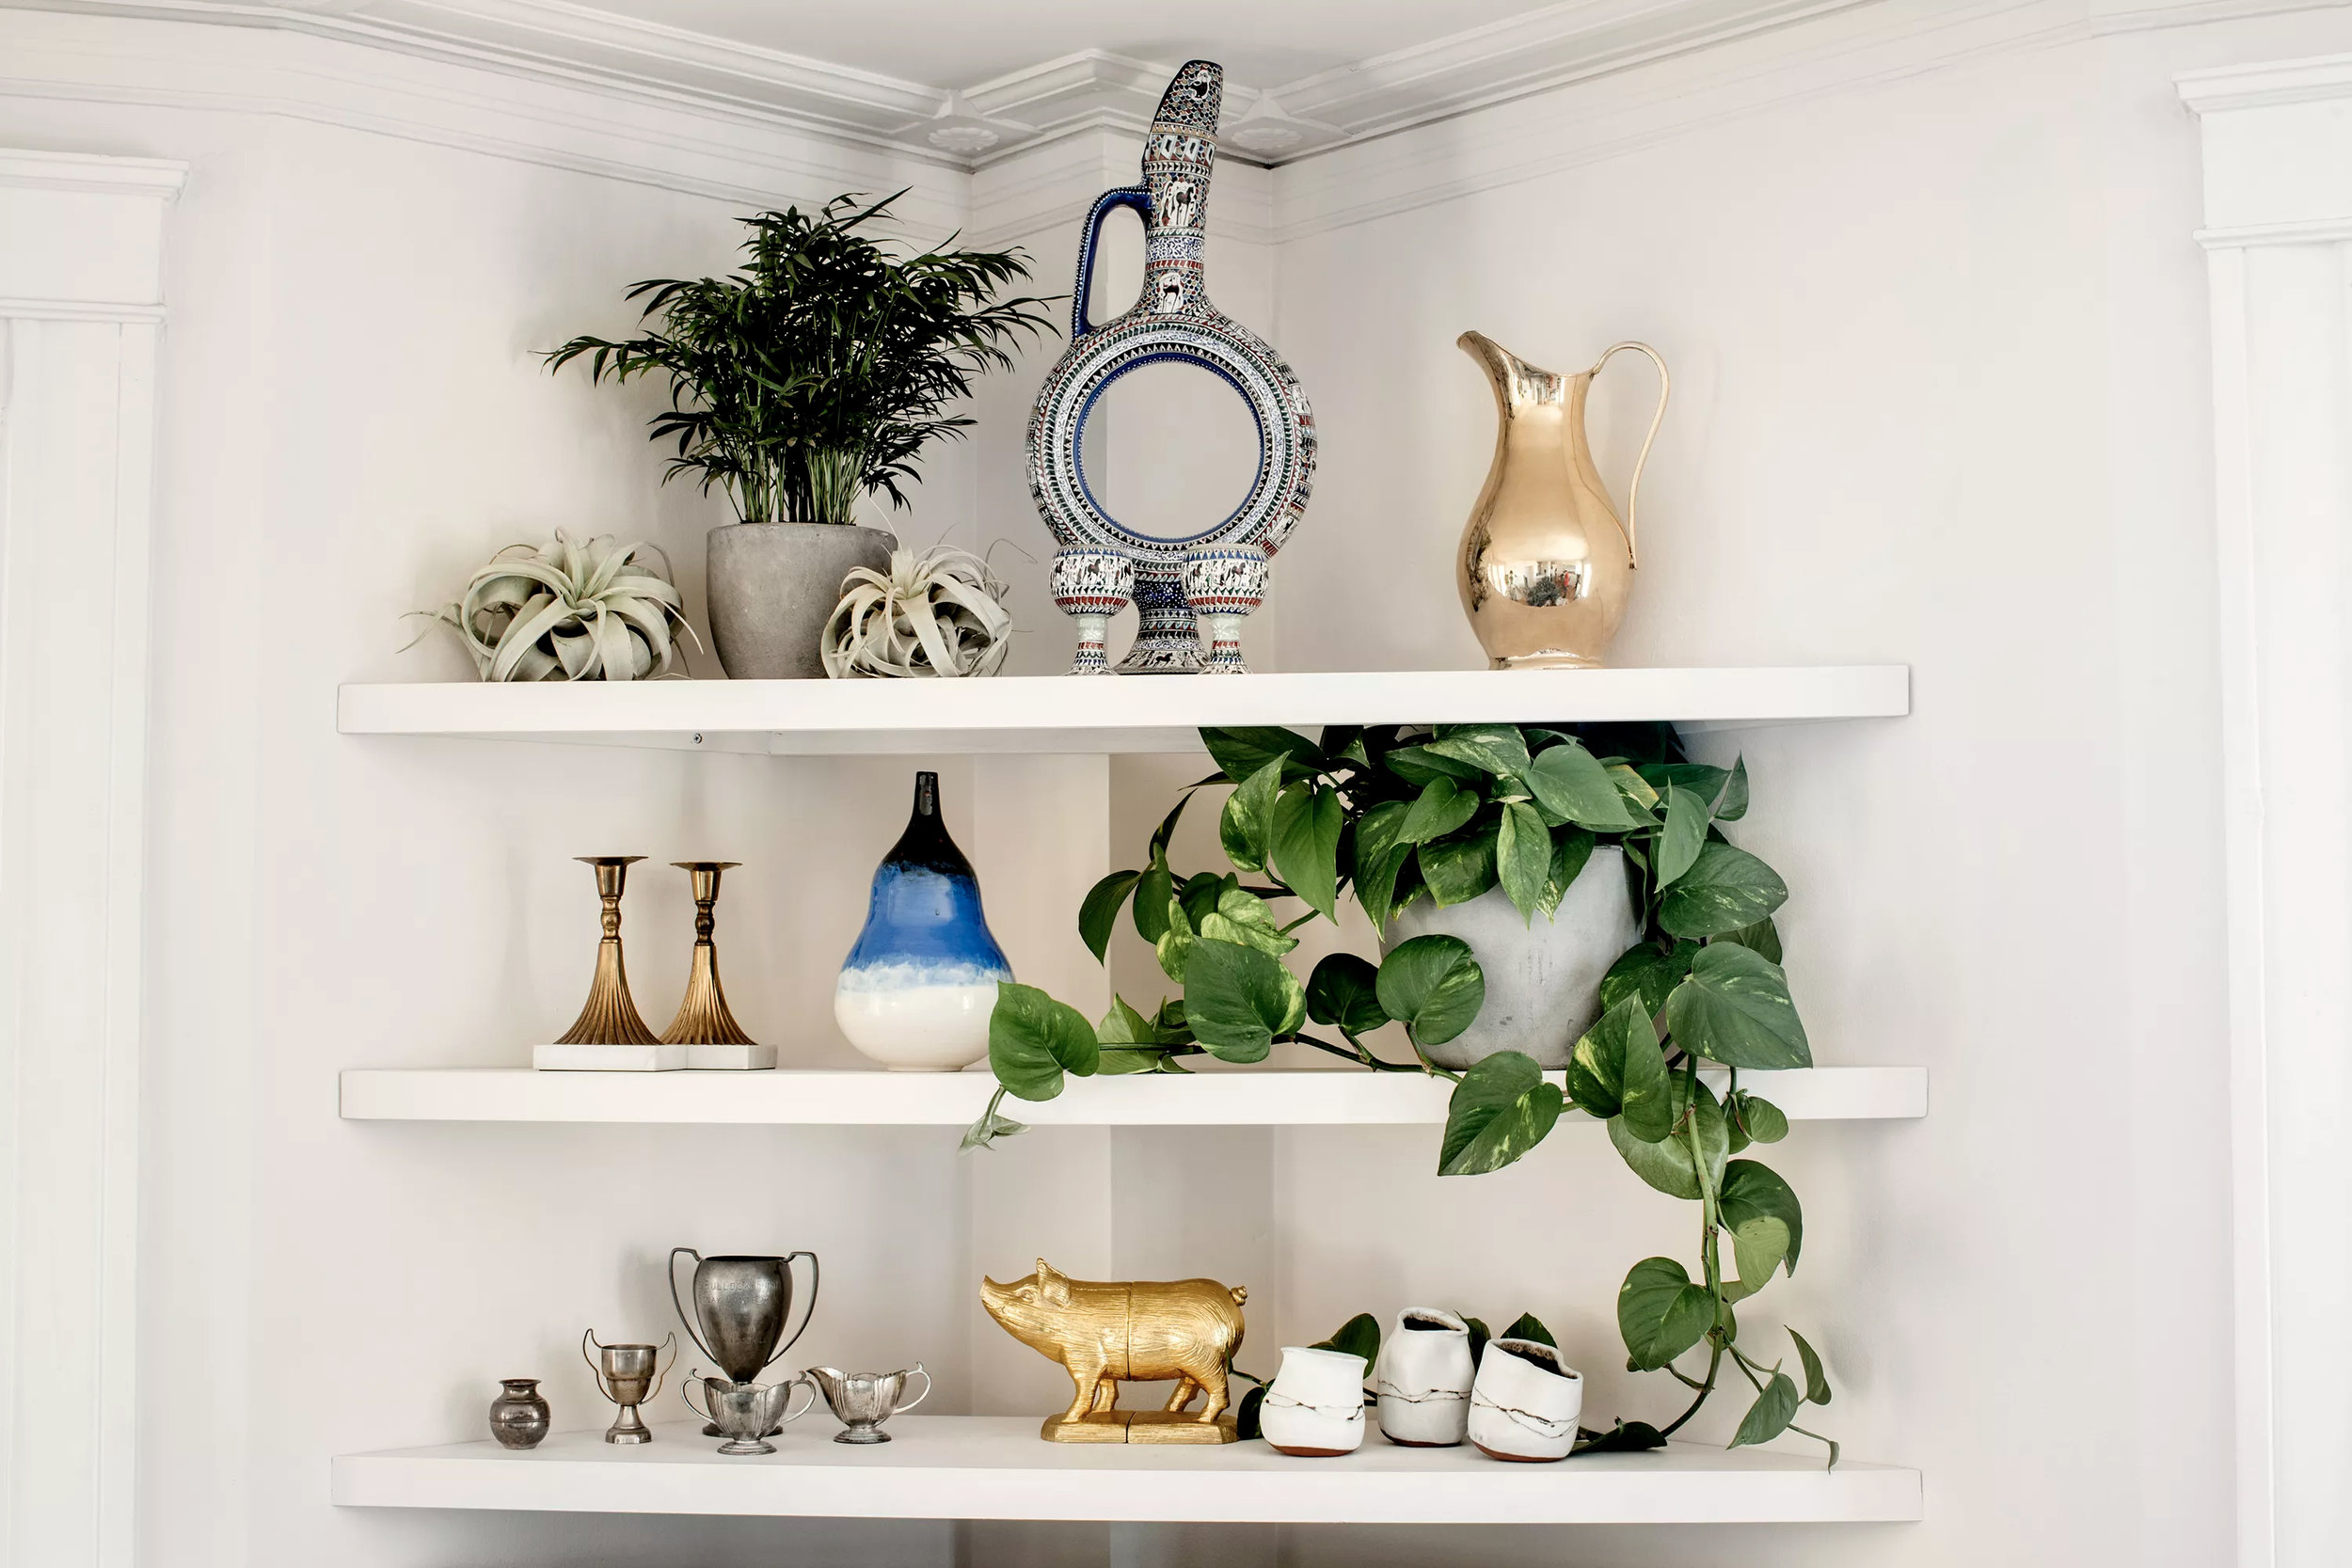 Alicia designed and installed a set of corner shelves that serve as a display area.